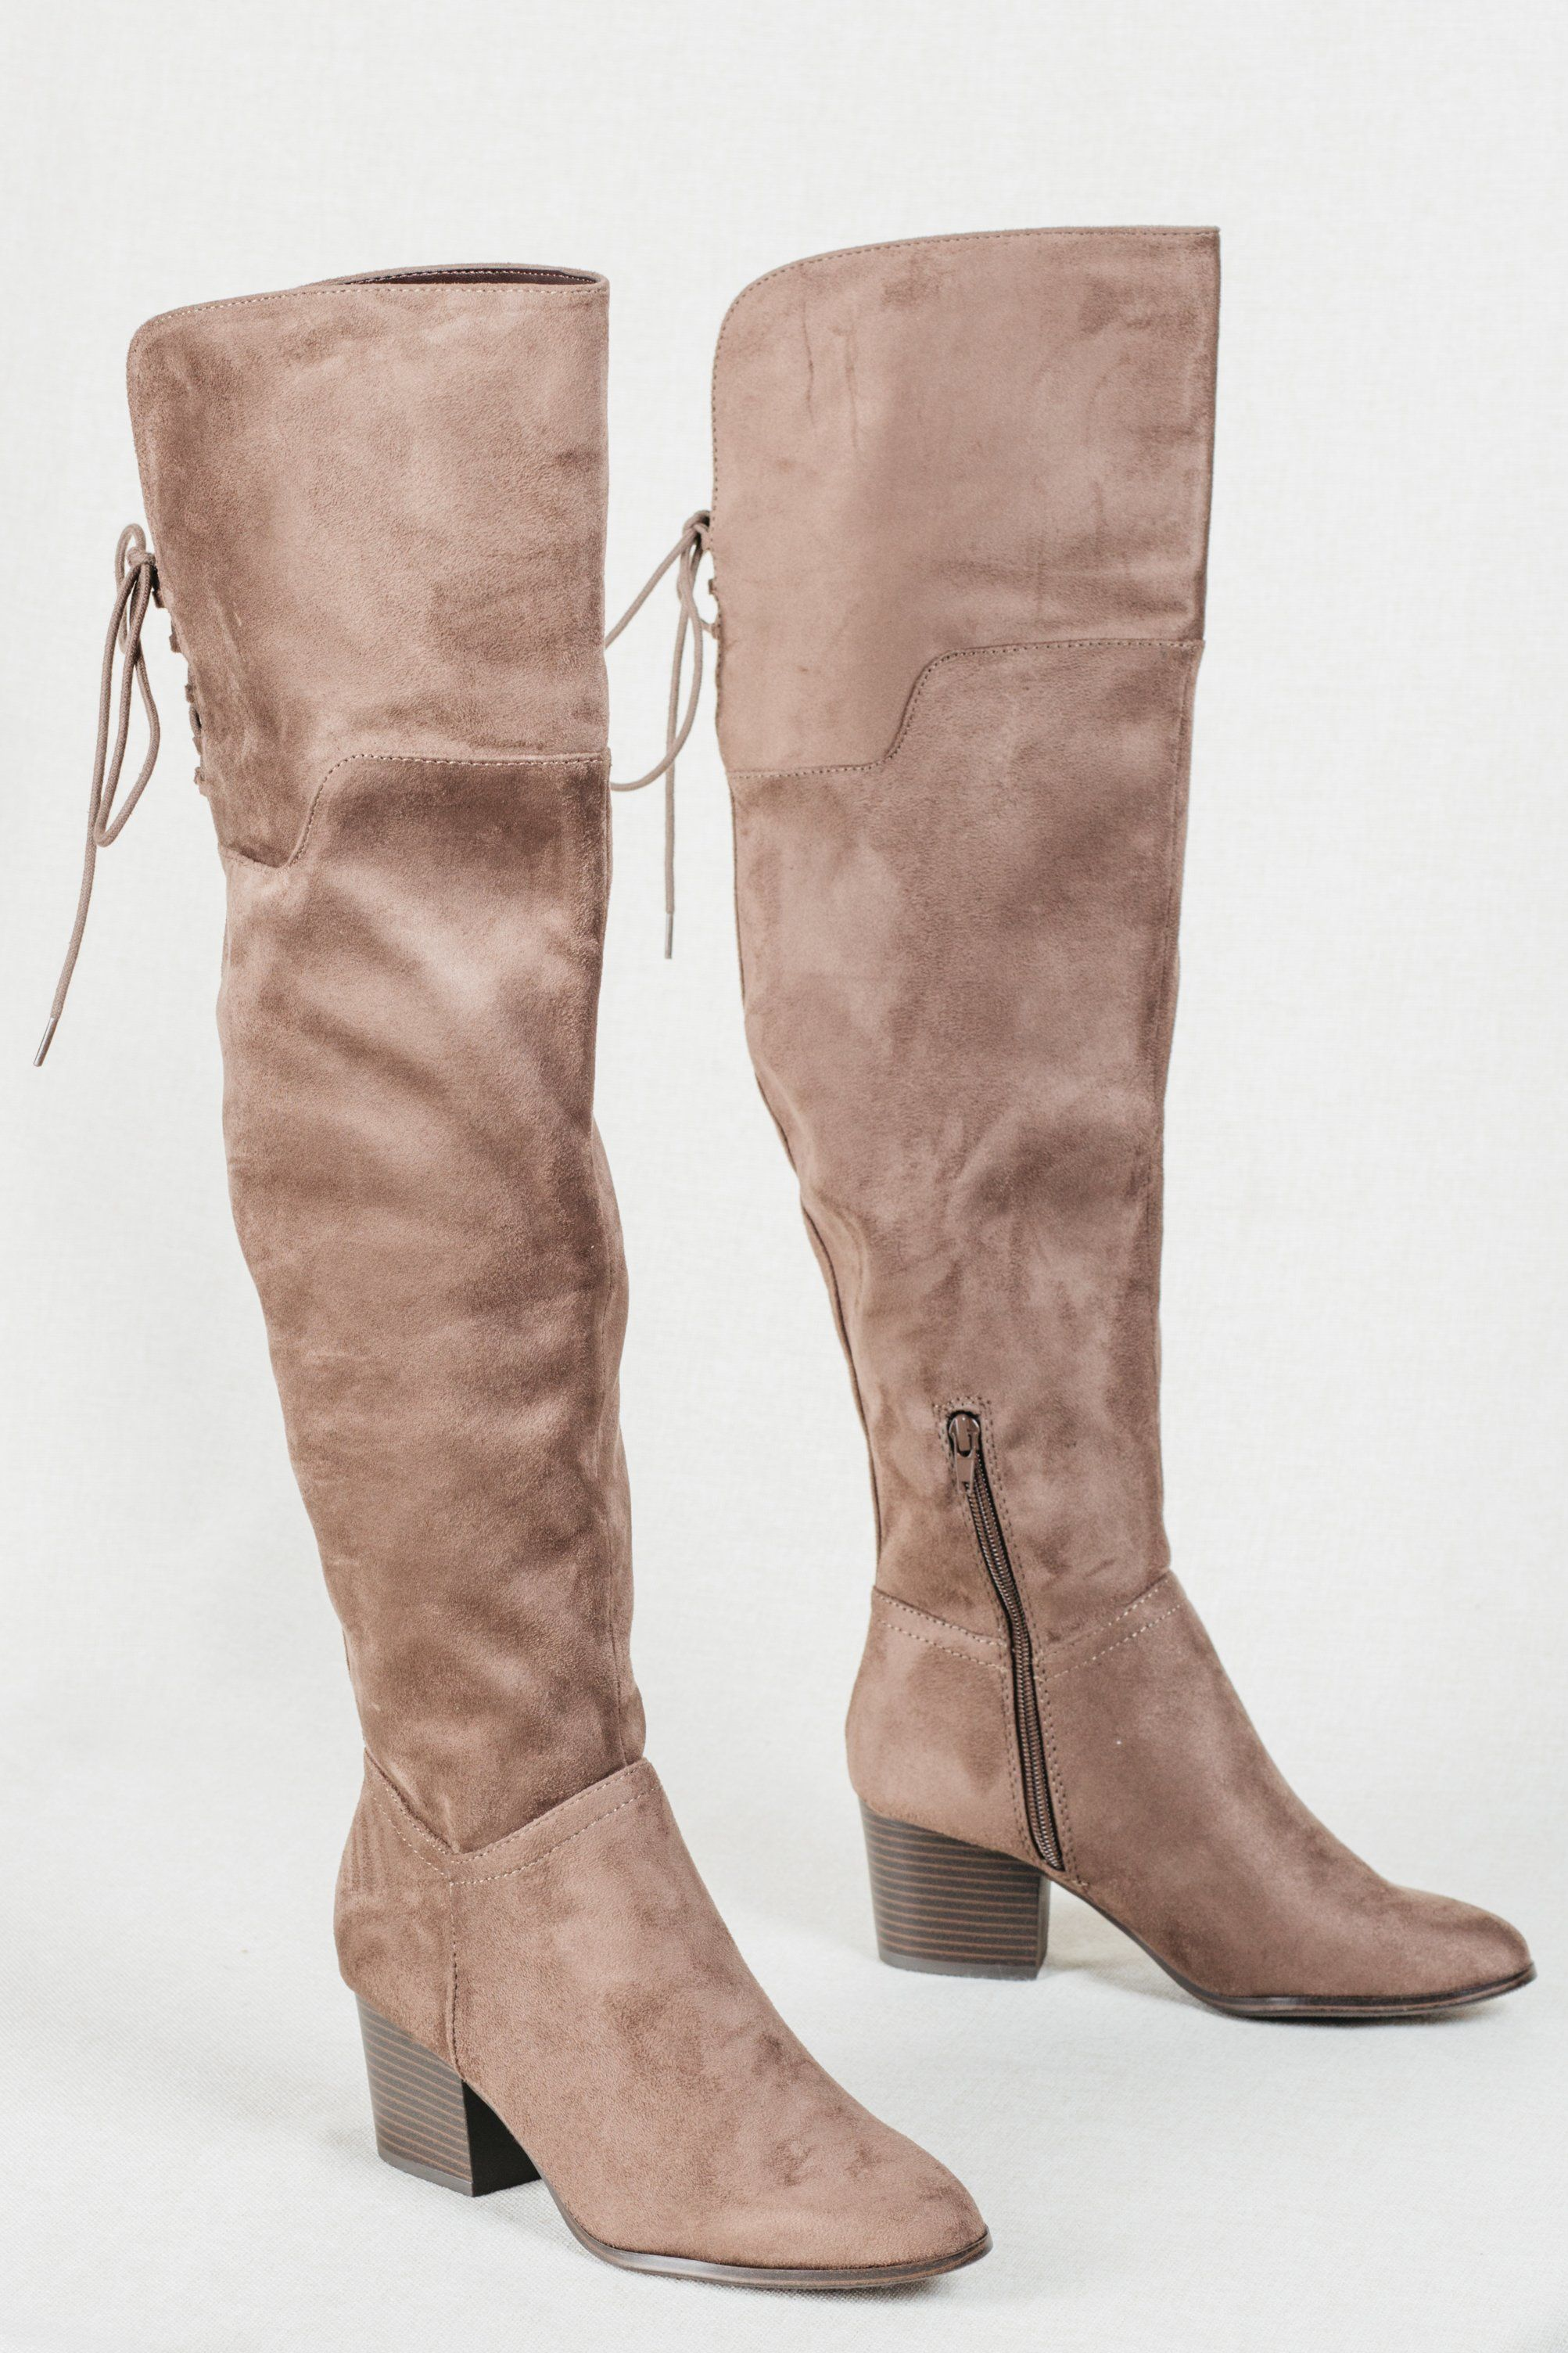 New York Nightlife Boots  brown over the knee boots, suede over the knee boots, light brown boots, light brown over the knee boots, wide over the knee boots, block heel, stacked heel, wooden heel, lace up boots, boots that lace up in the back